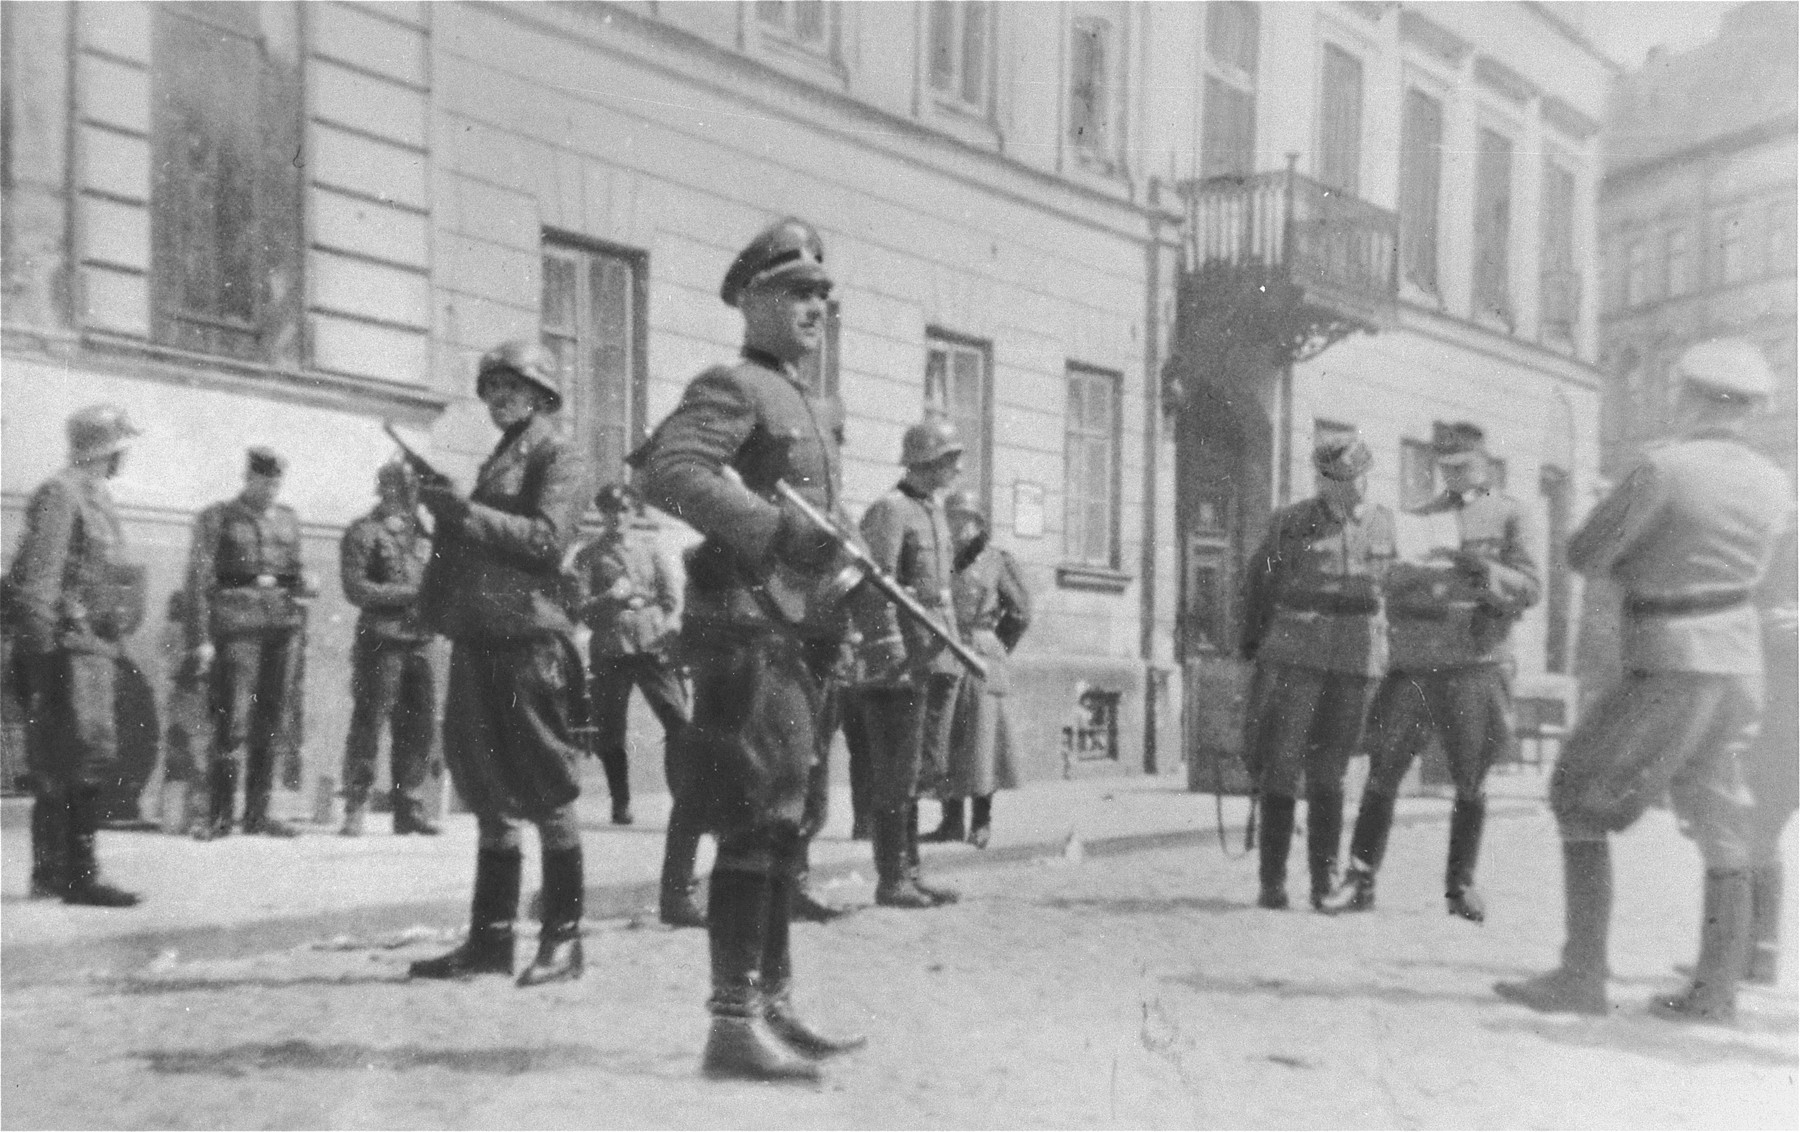 SS and police officers look on as SS Major General Juergen Stroop discusses razing the houses on Niska and Muranowska Streets with Kaleschke, his police adjutant.